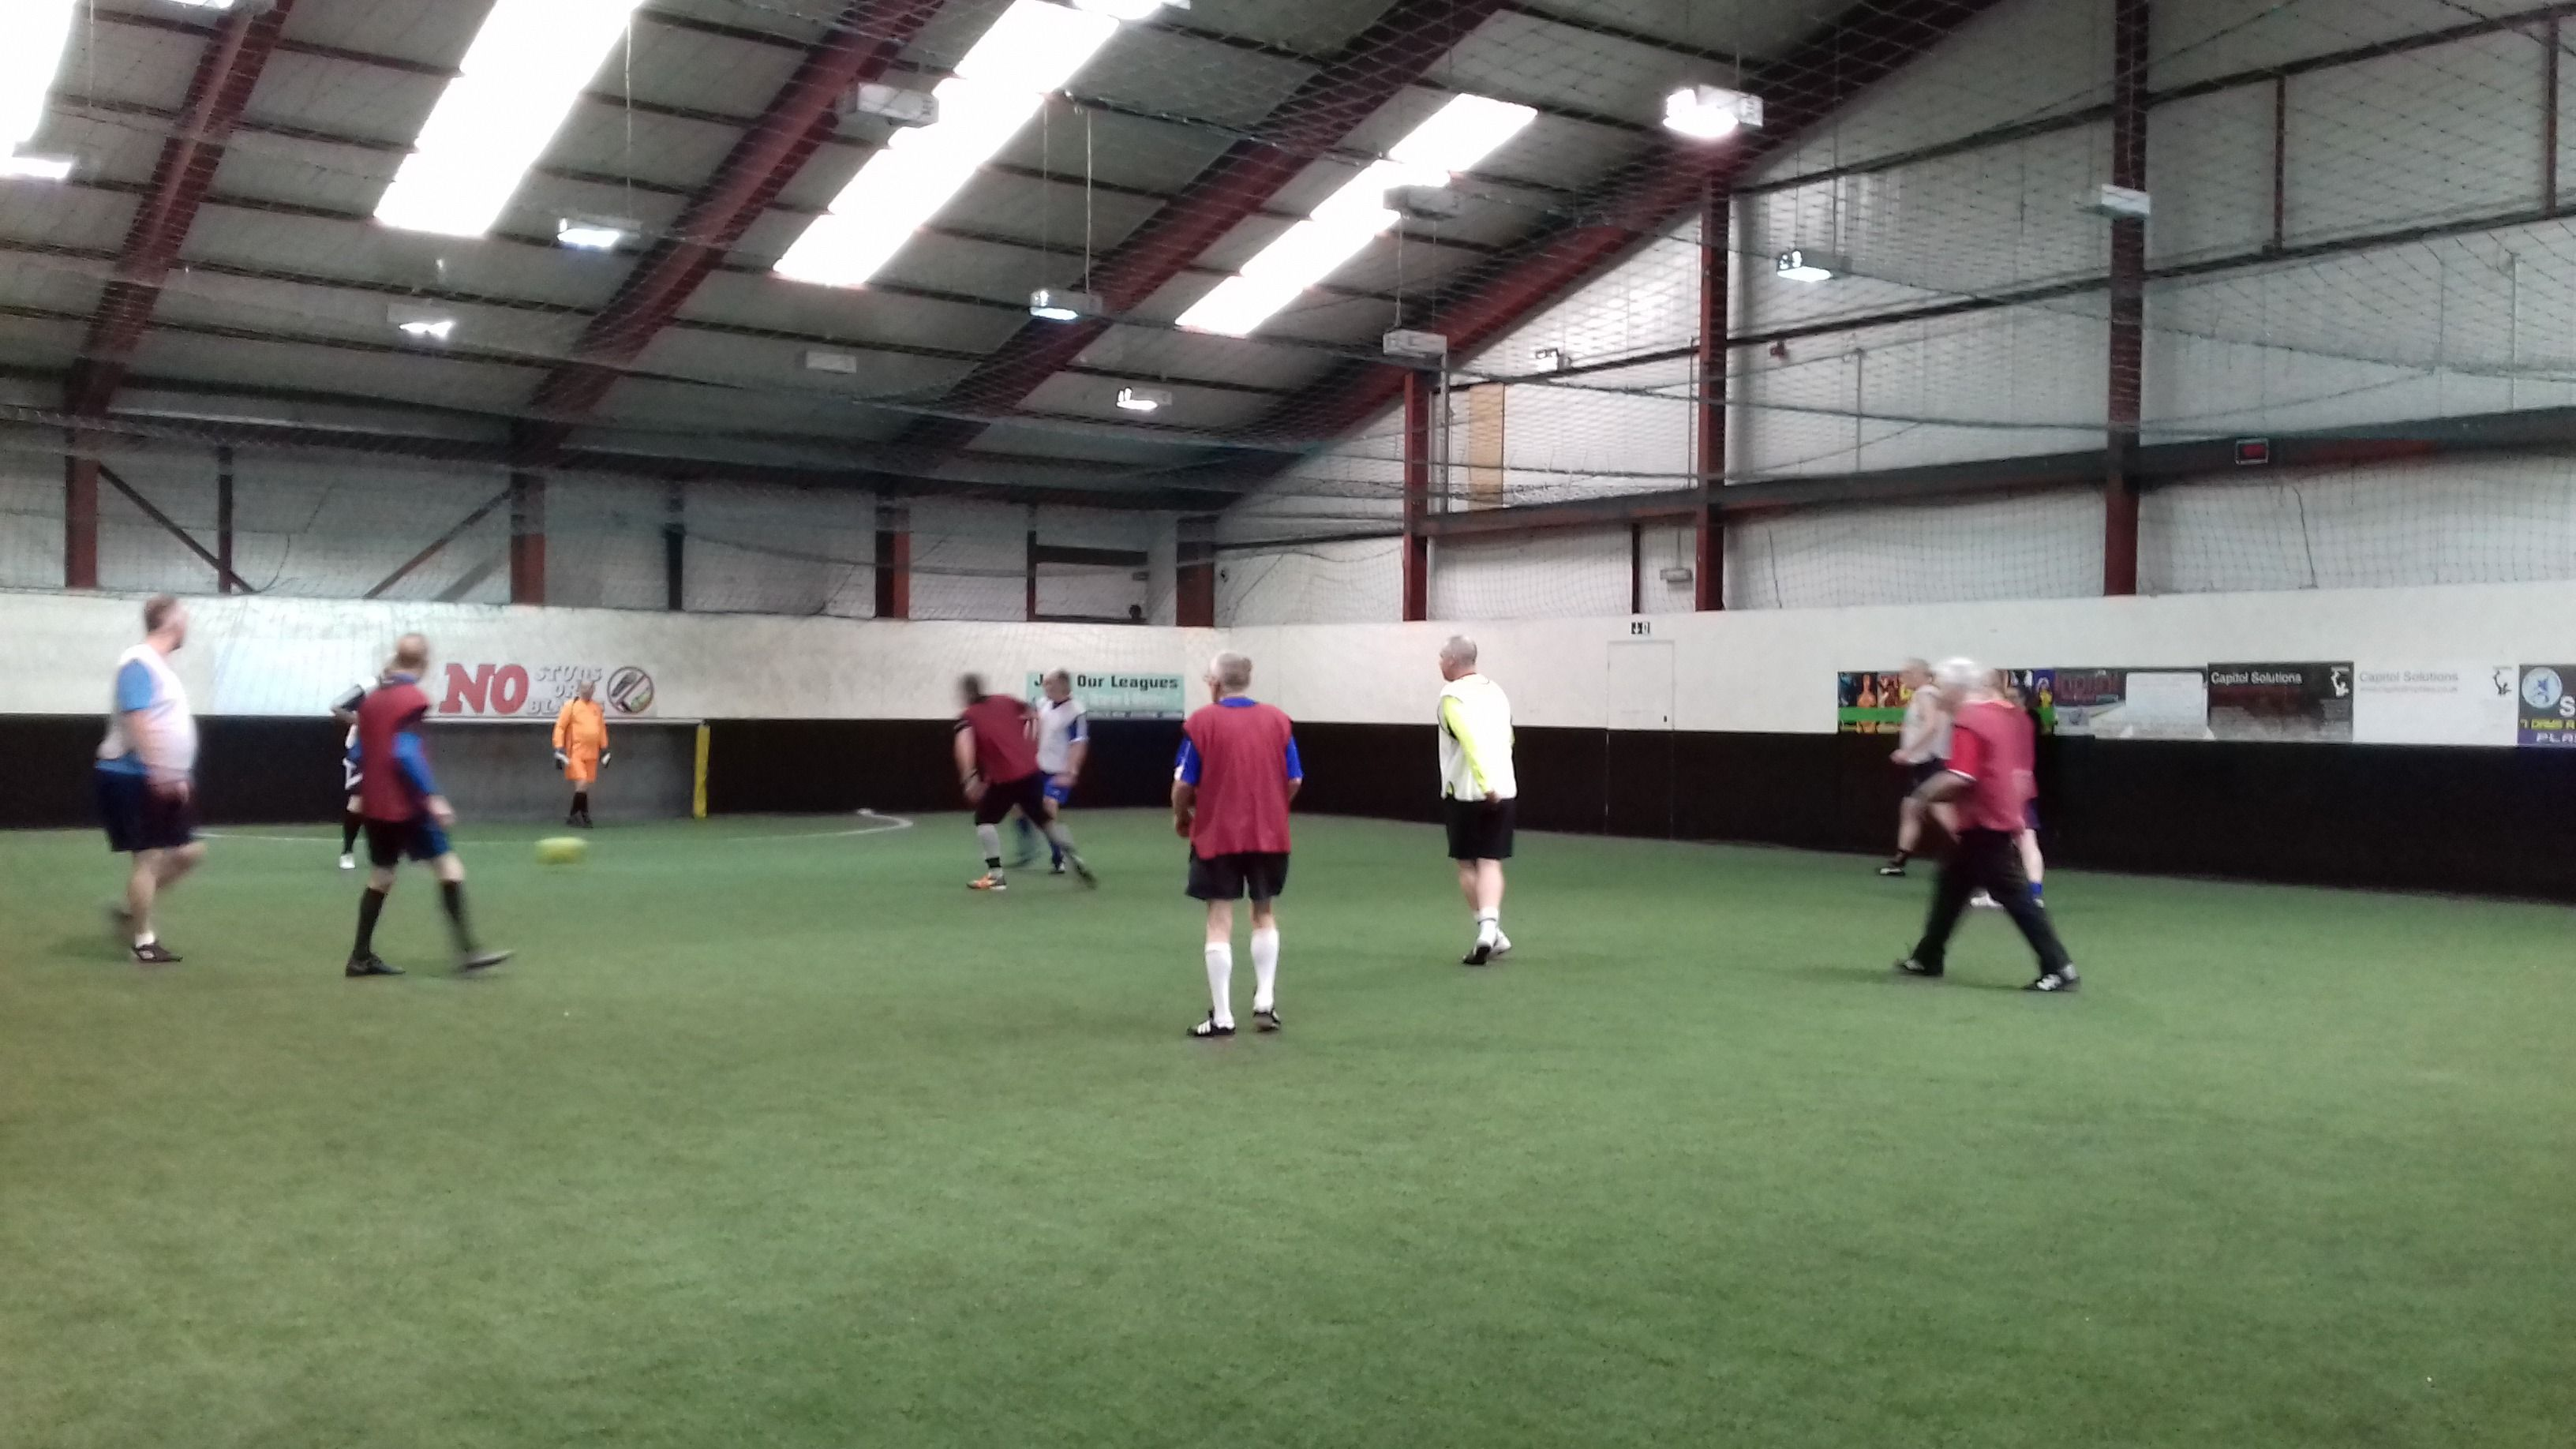 Soccerdome Walking Football Merseyside Indoor 3g Facility With Showers Changing Rooms Cafe And Getfit Walkingsports Followba Merseyside Football Ymca